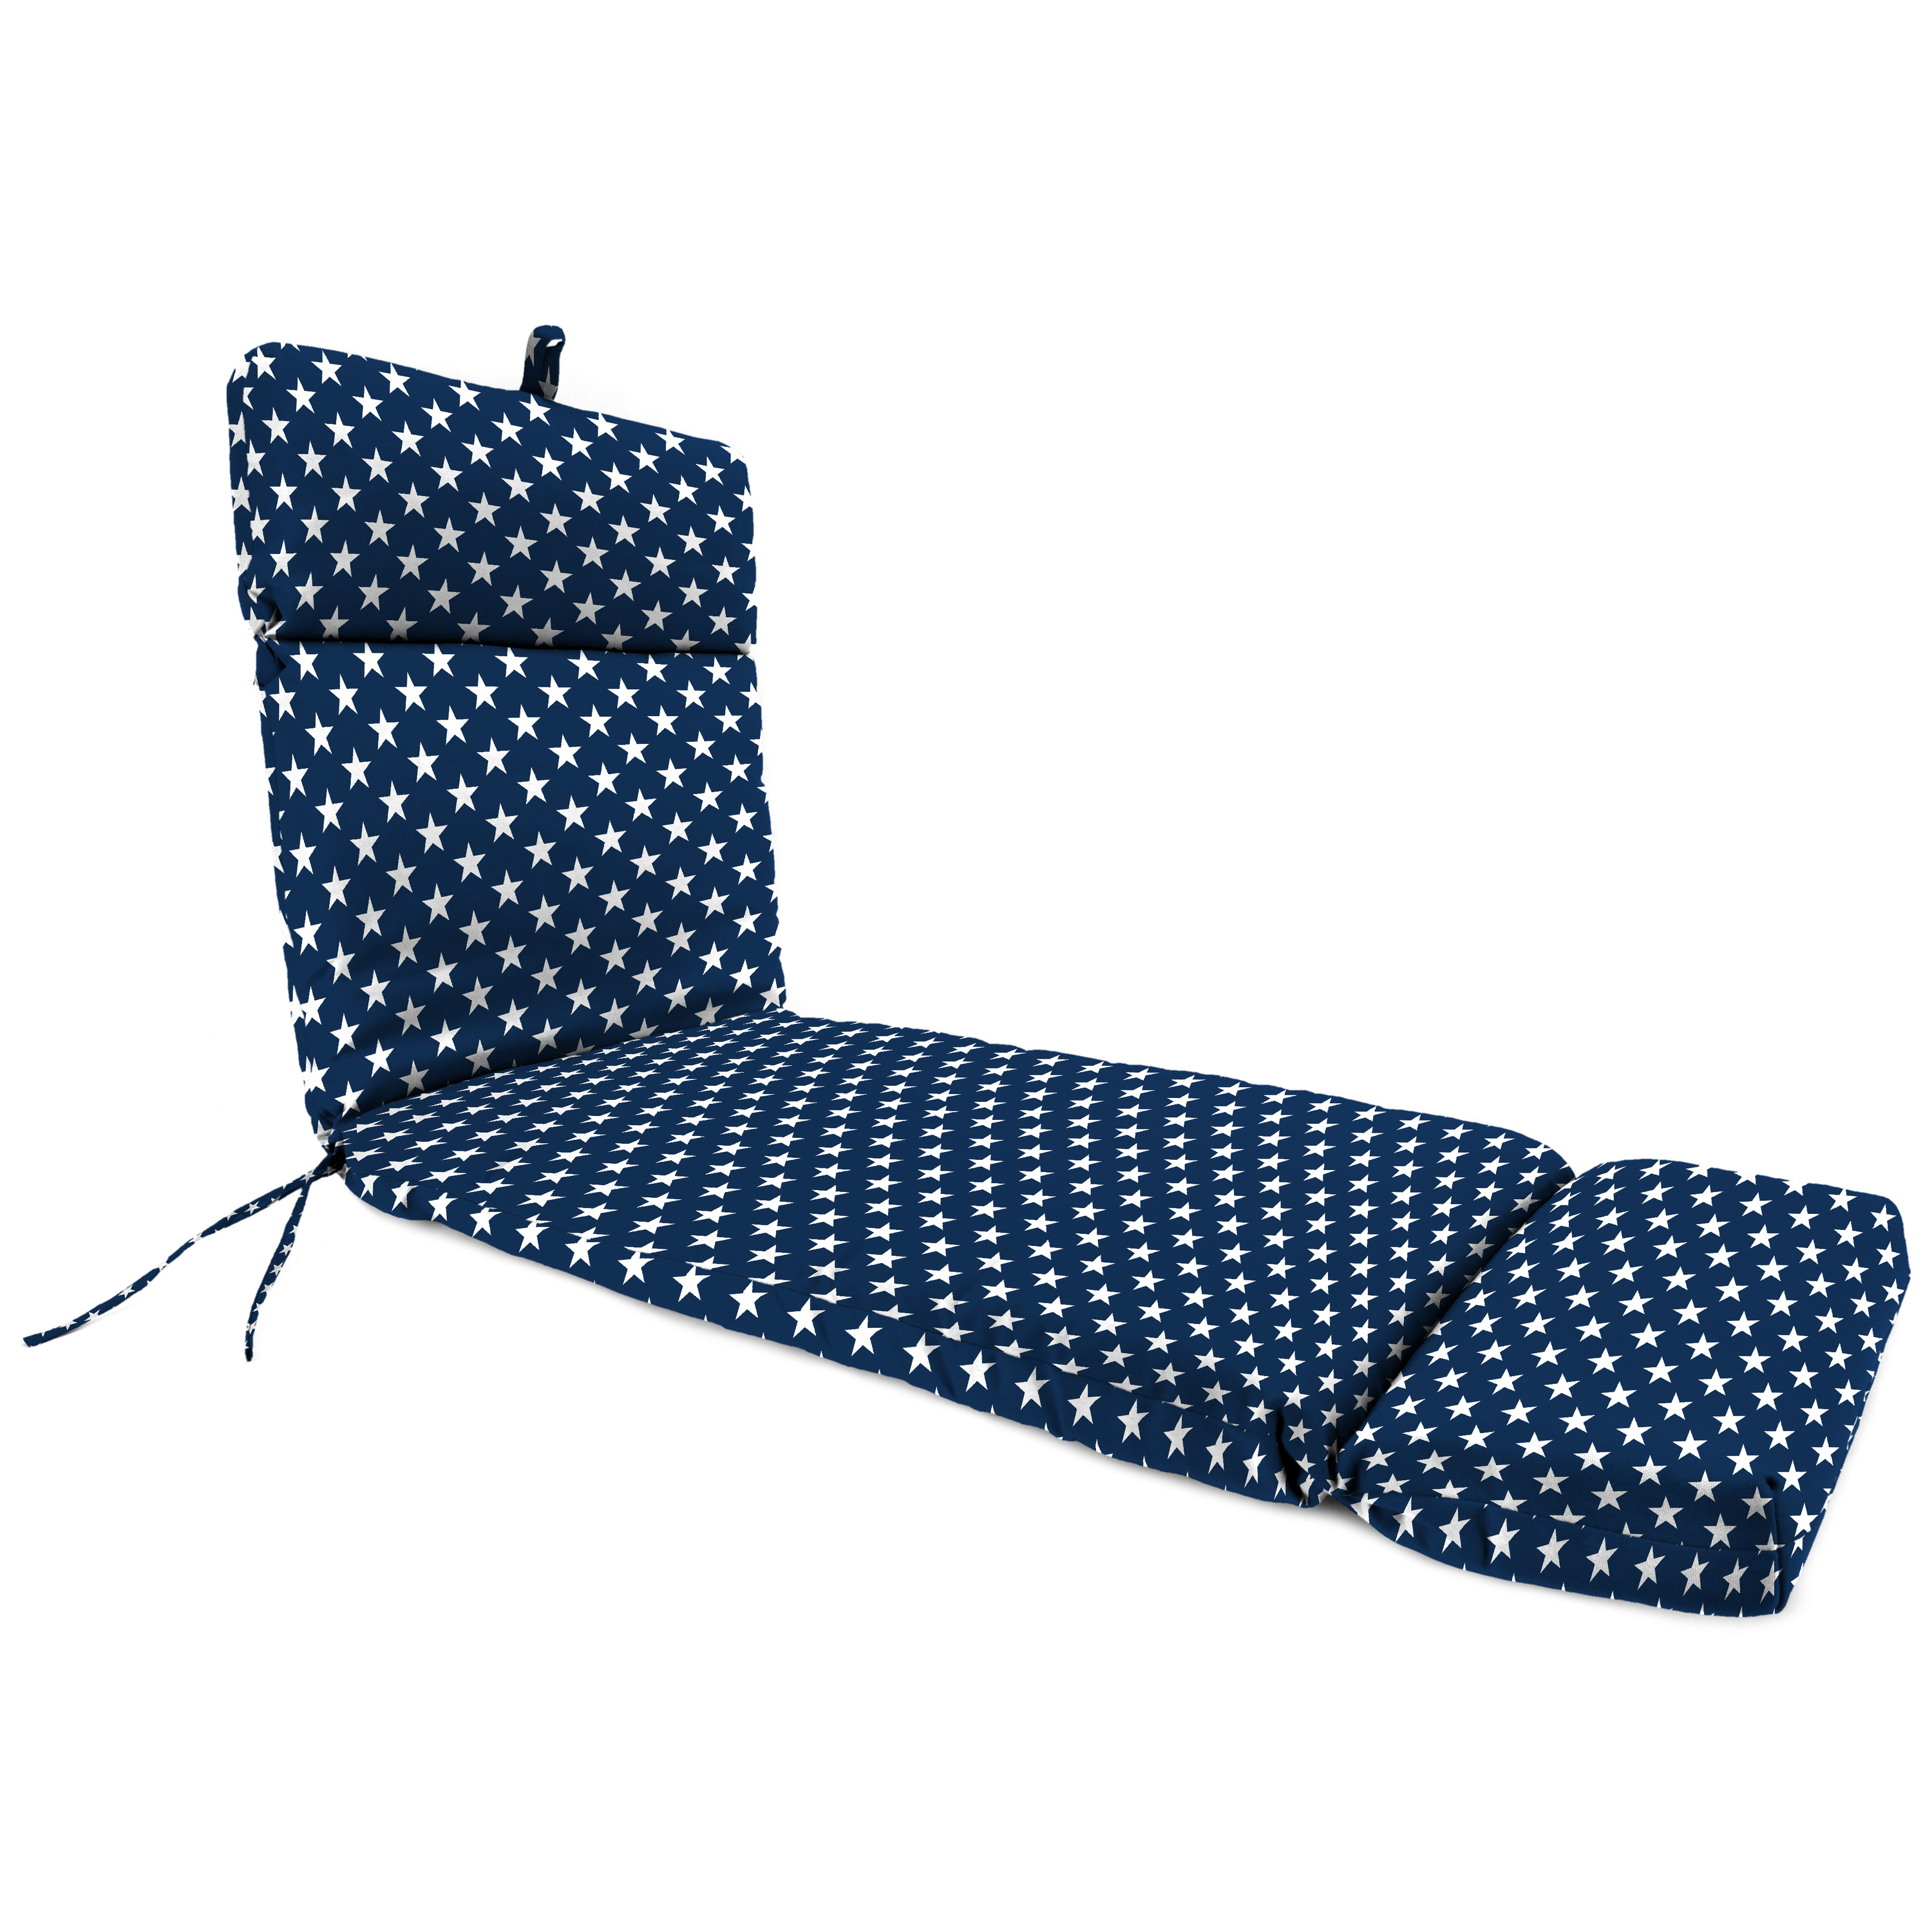 Jordan Manufacturing Outdoor French Edge Chaise Lounge Cushion, Stars Oxford